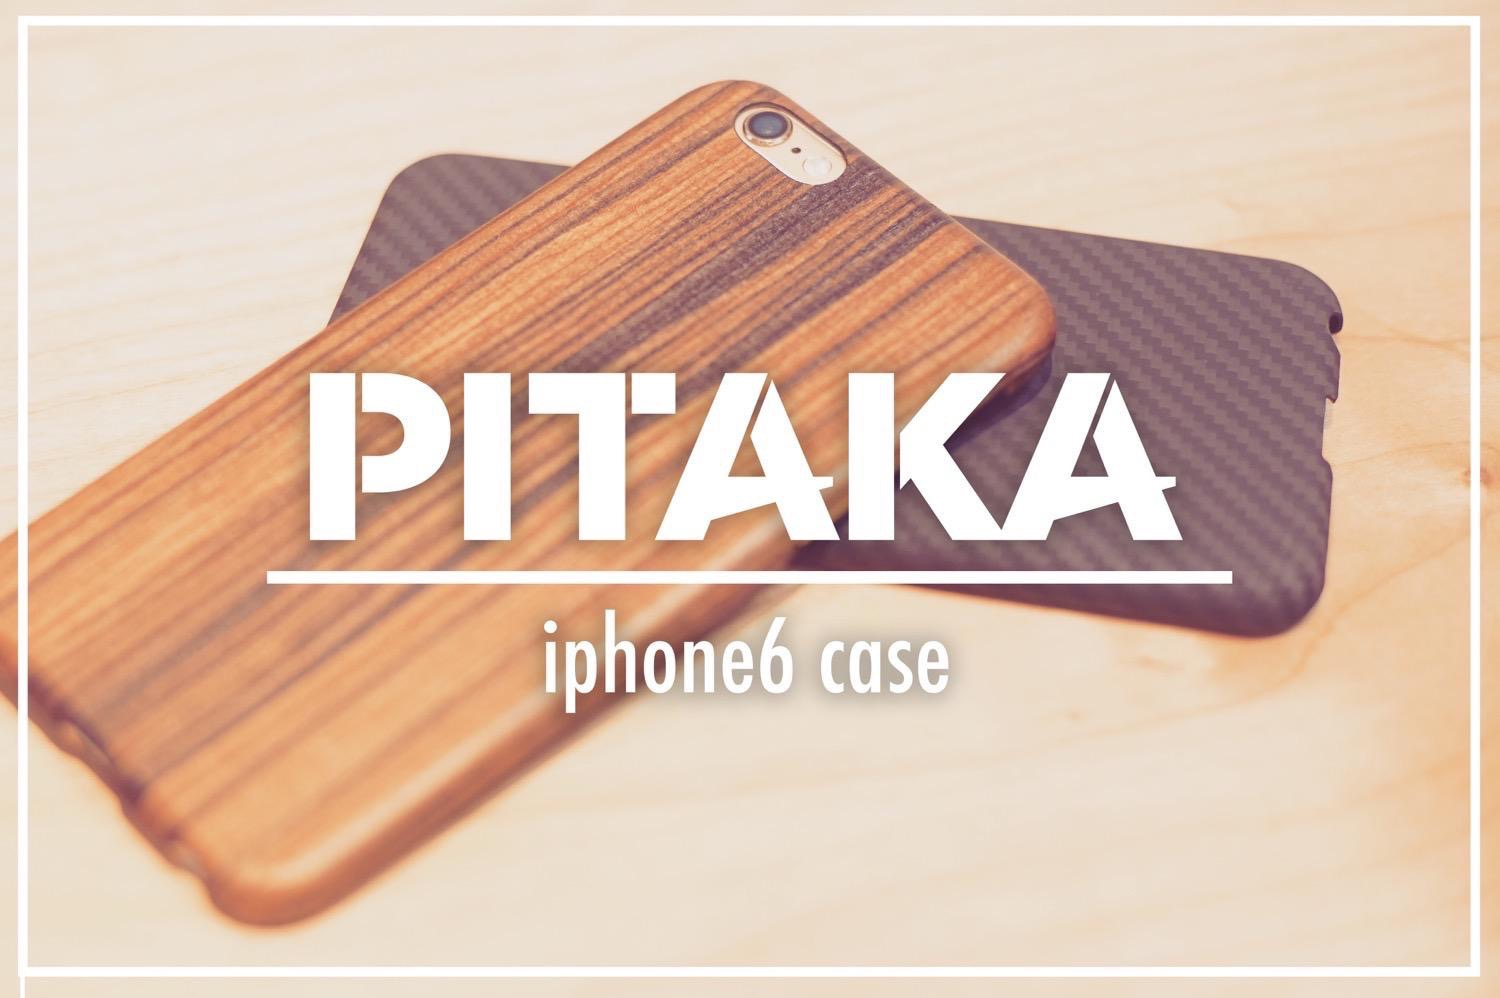 Pitaka iphone6 case18